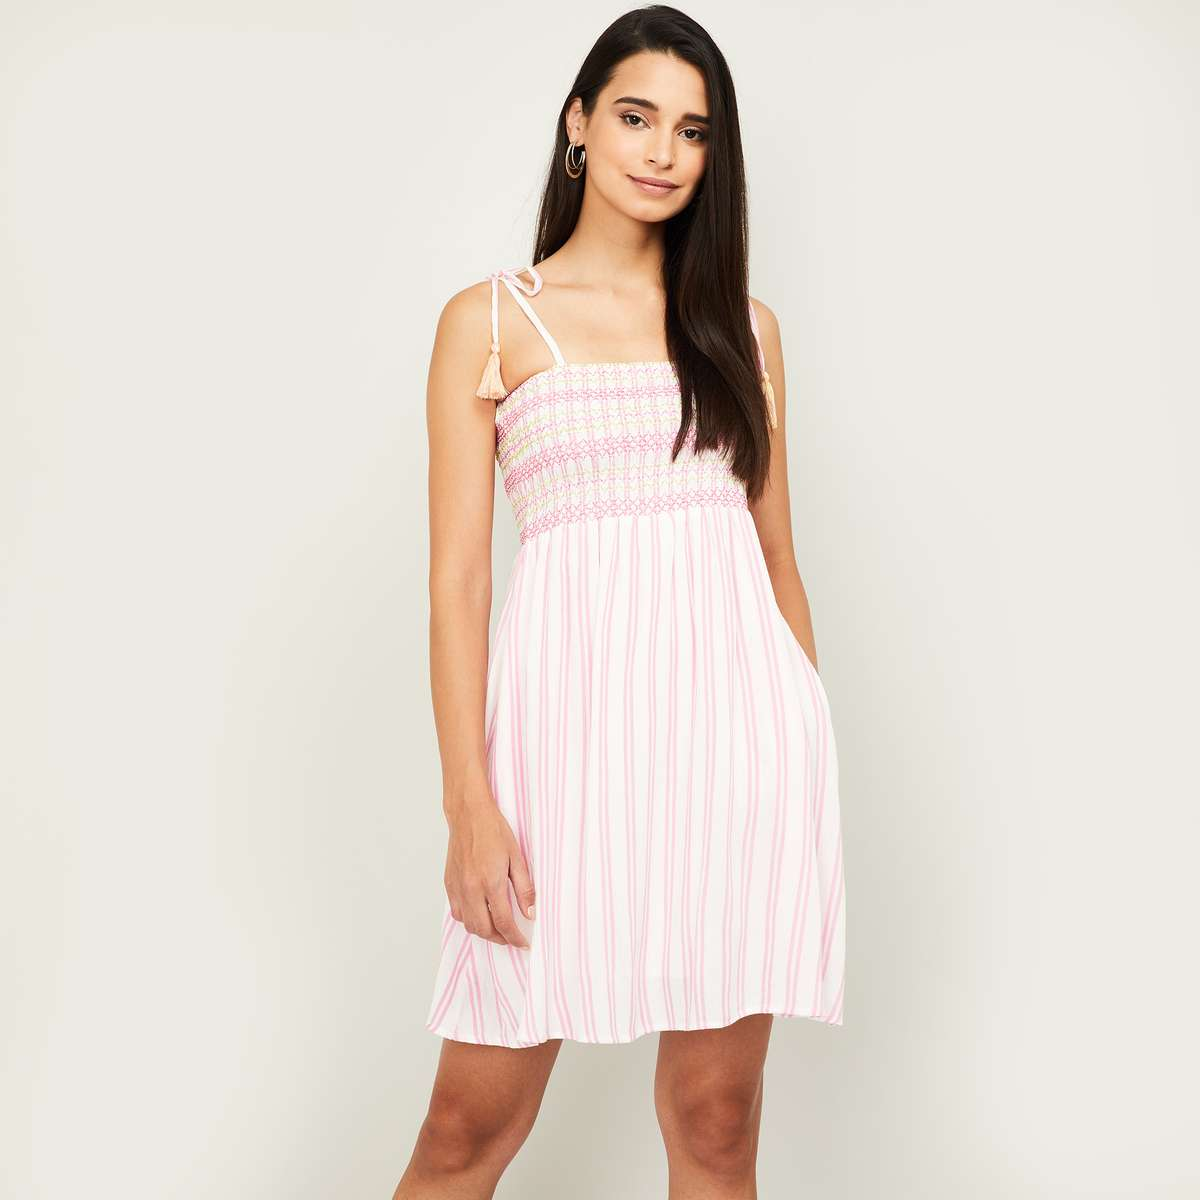 7.GINGER Women Striped Camisole Dress